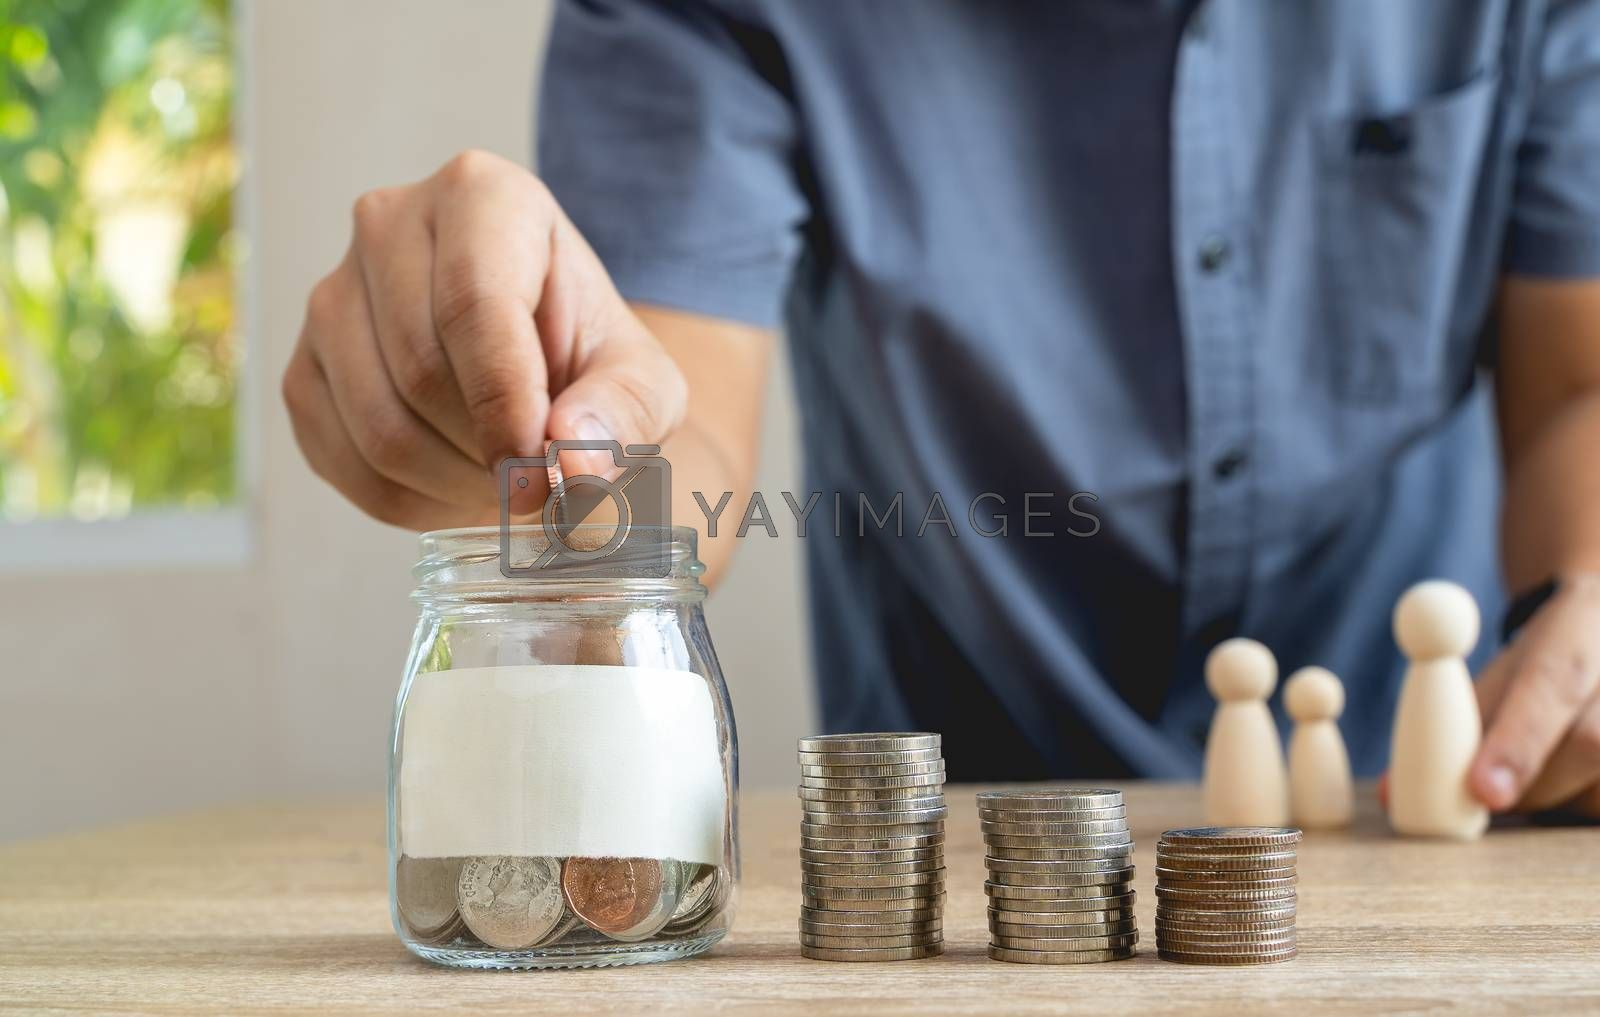 Money savings concepts  Glass bottle and stack coins with blur Men are coining in Glass bottel for saving money for families with family wooden dolls on wooden table with blur background, selective focus